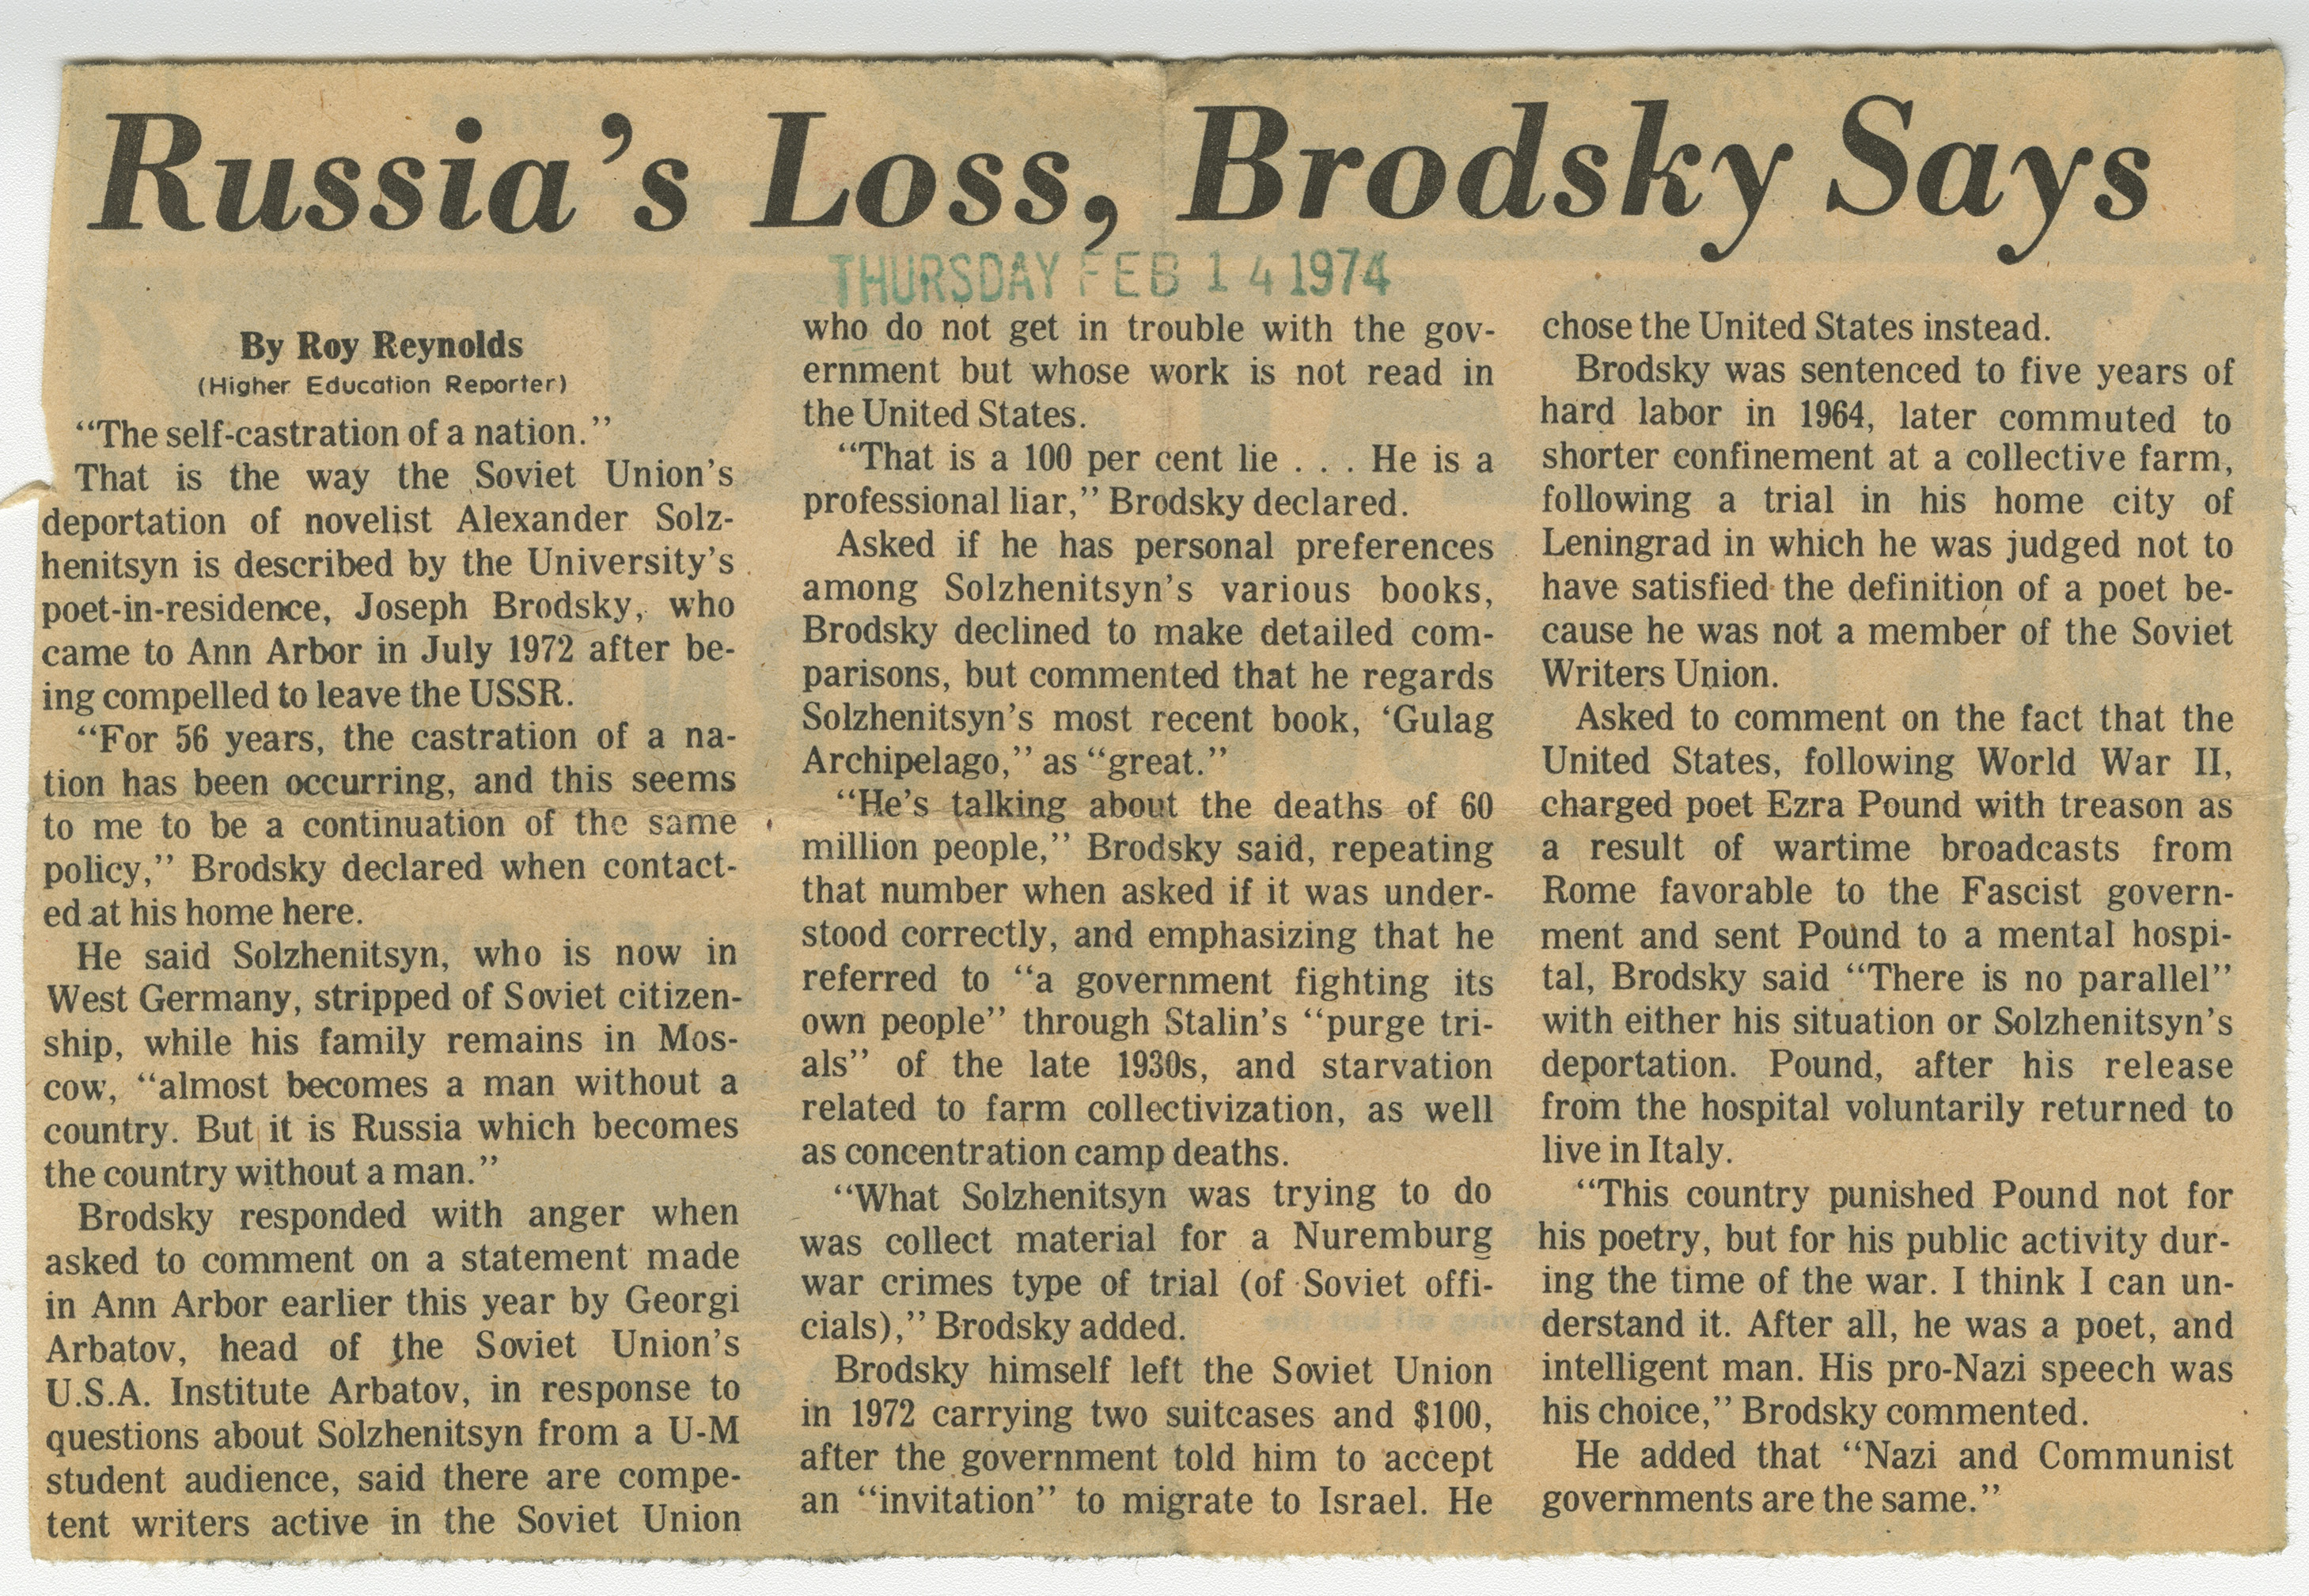 Russia's Loss, Brodsky Says image